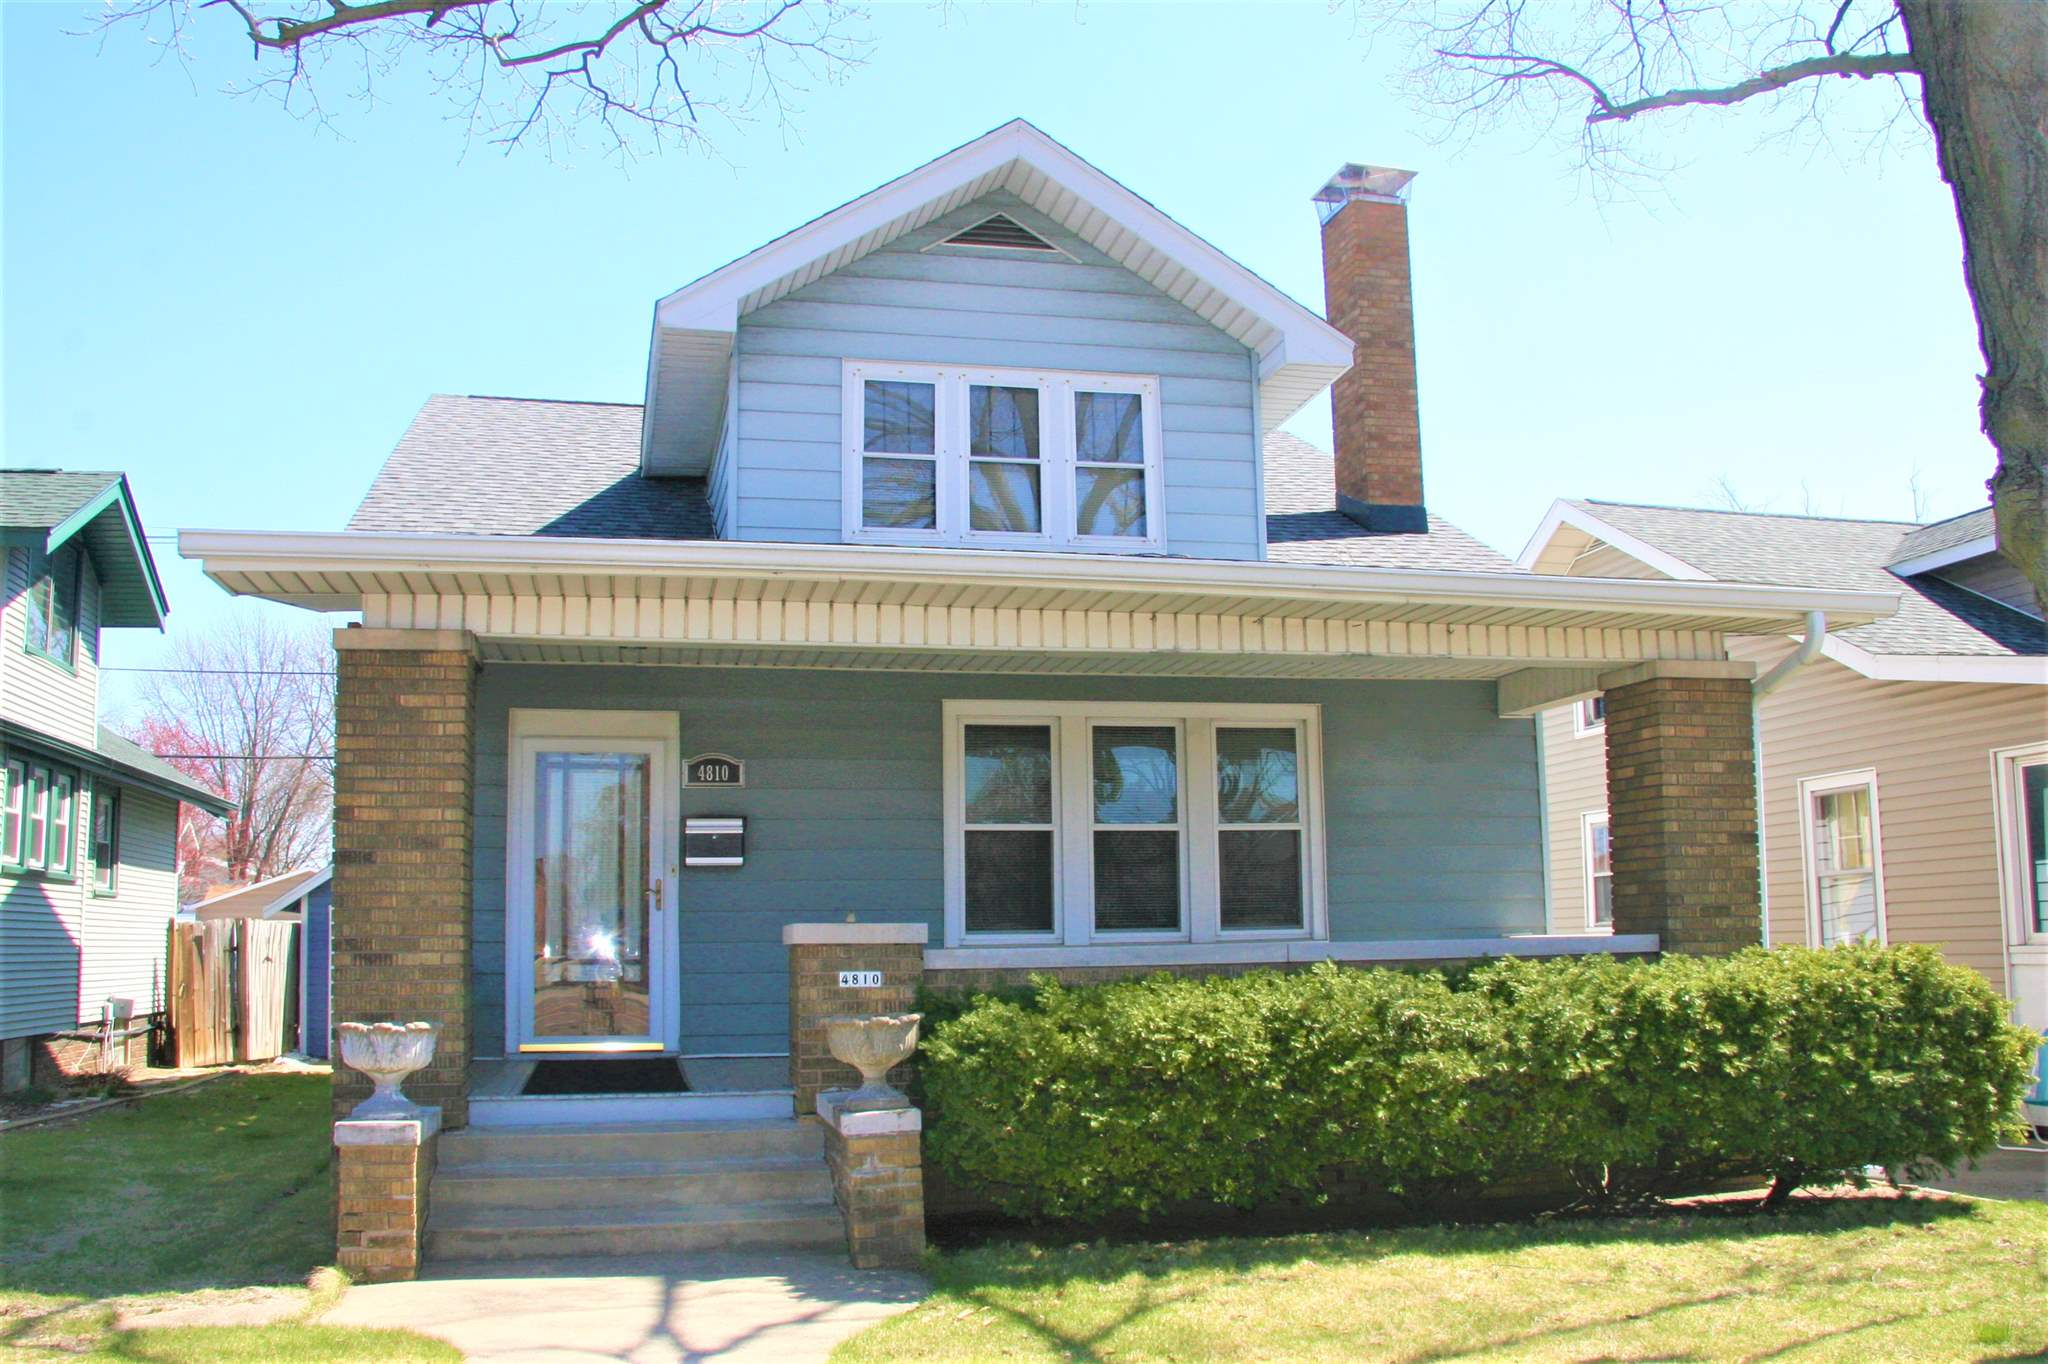 4810 N PROSPECT Property Photo - Peoria Heights, IL real estate listing